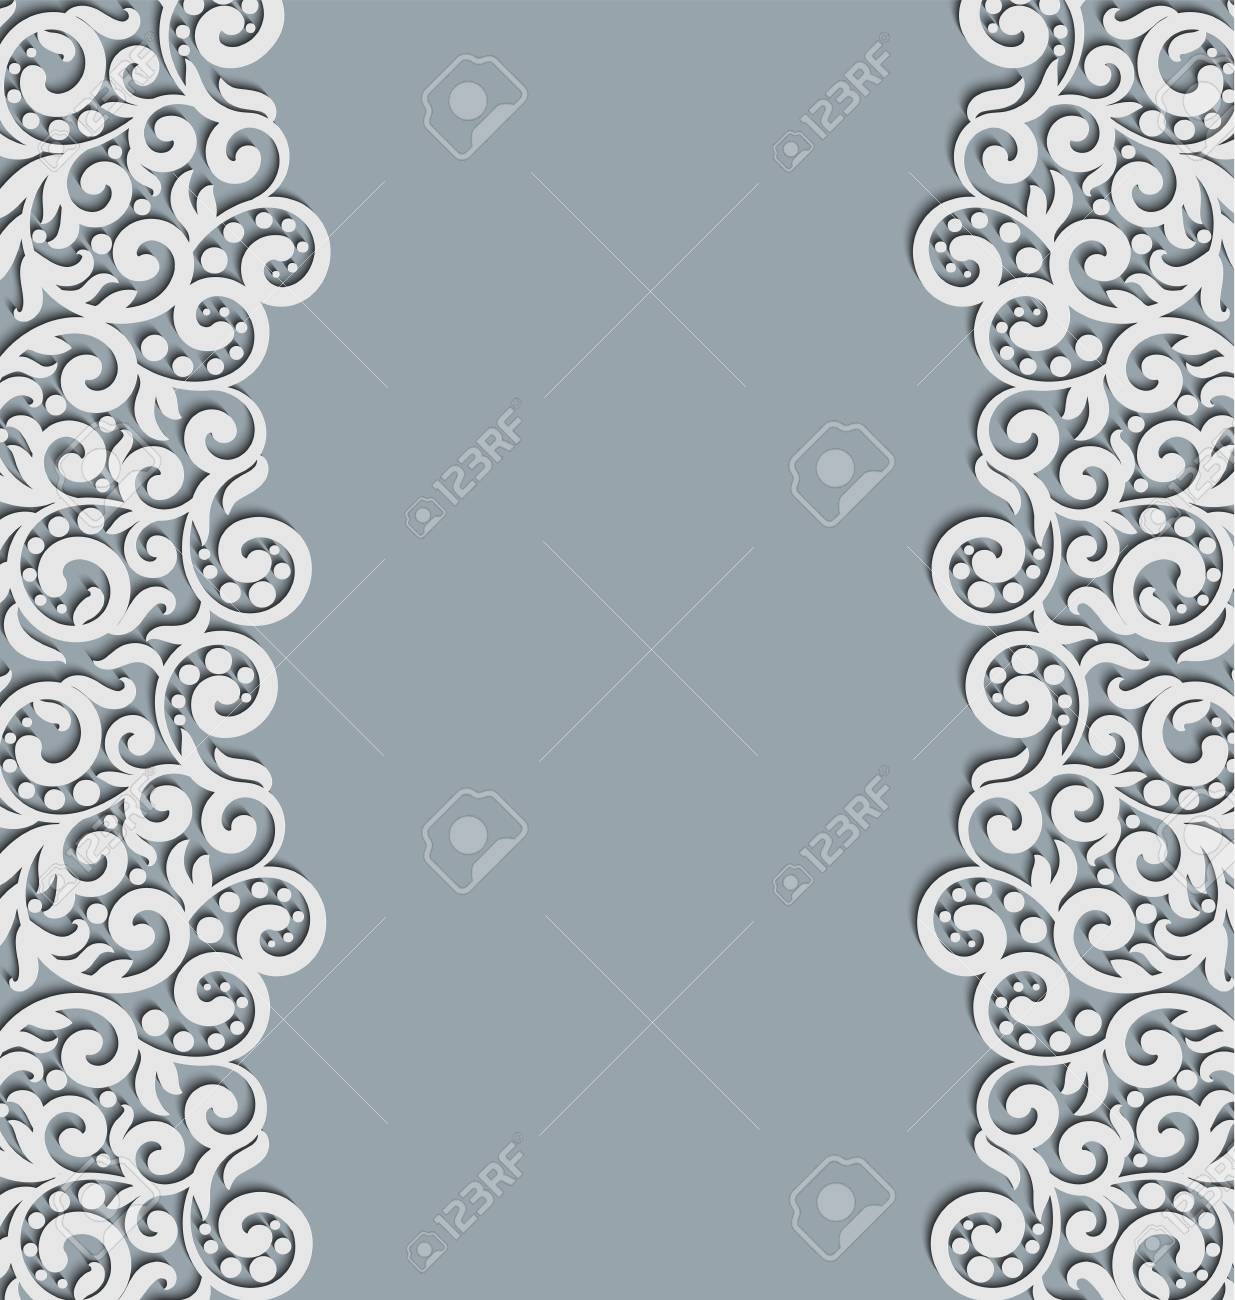 Vector Floral Swirls Decoration Abstract 3d Background For Invitation